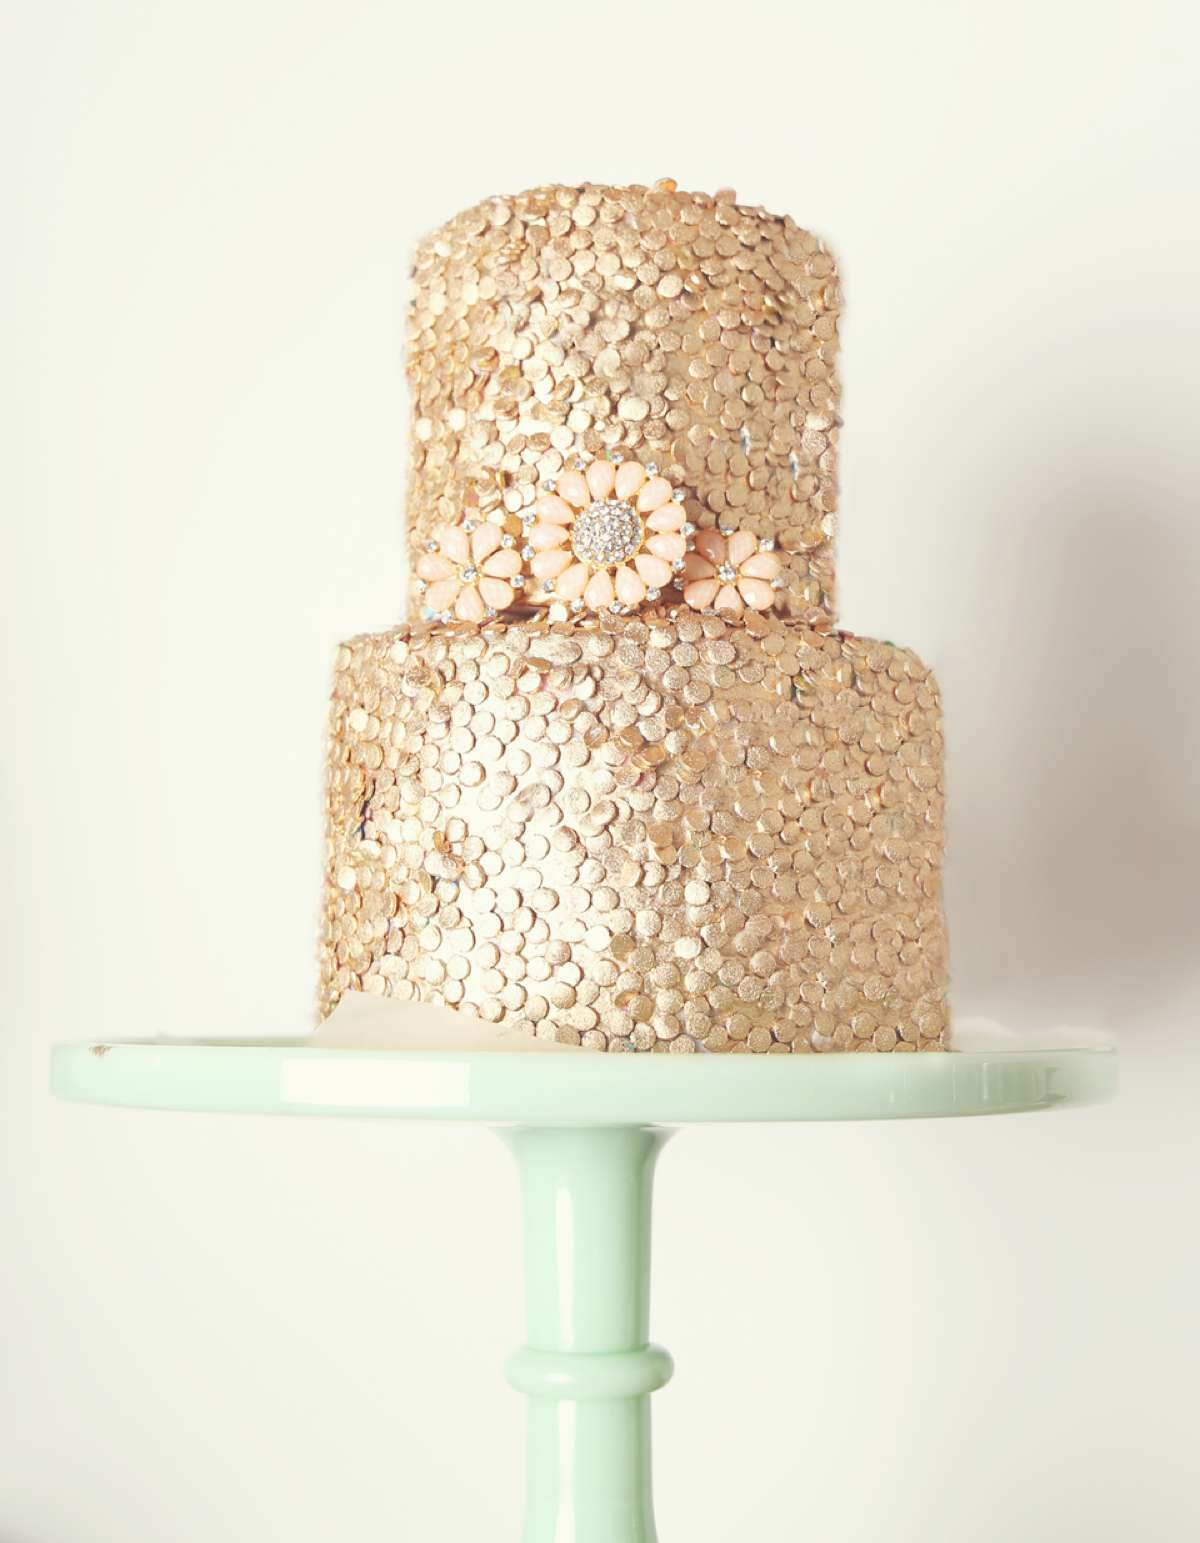 Sequin wedding ideas sunflower-bakery-com